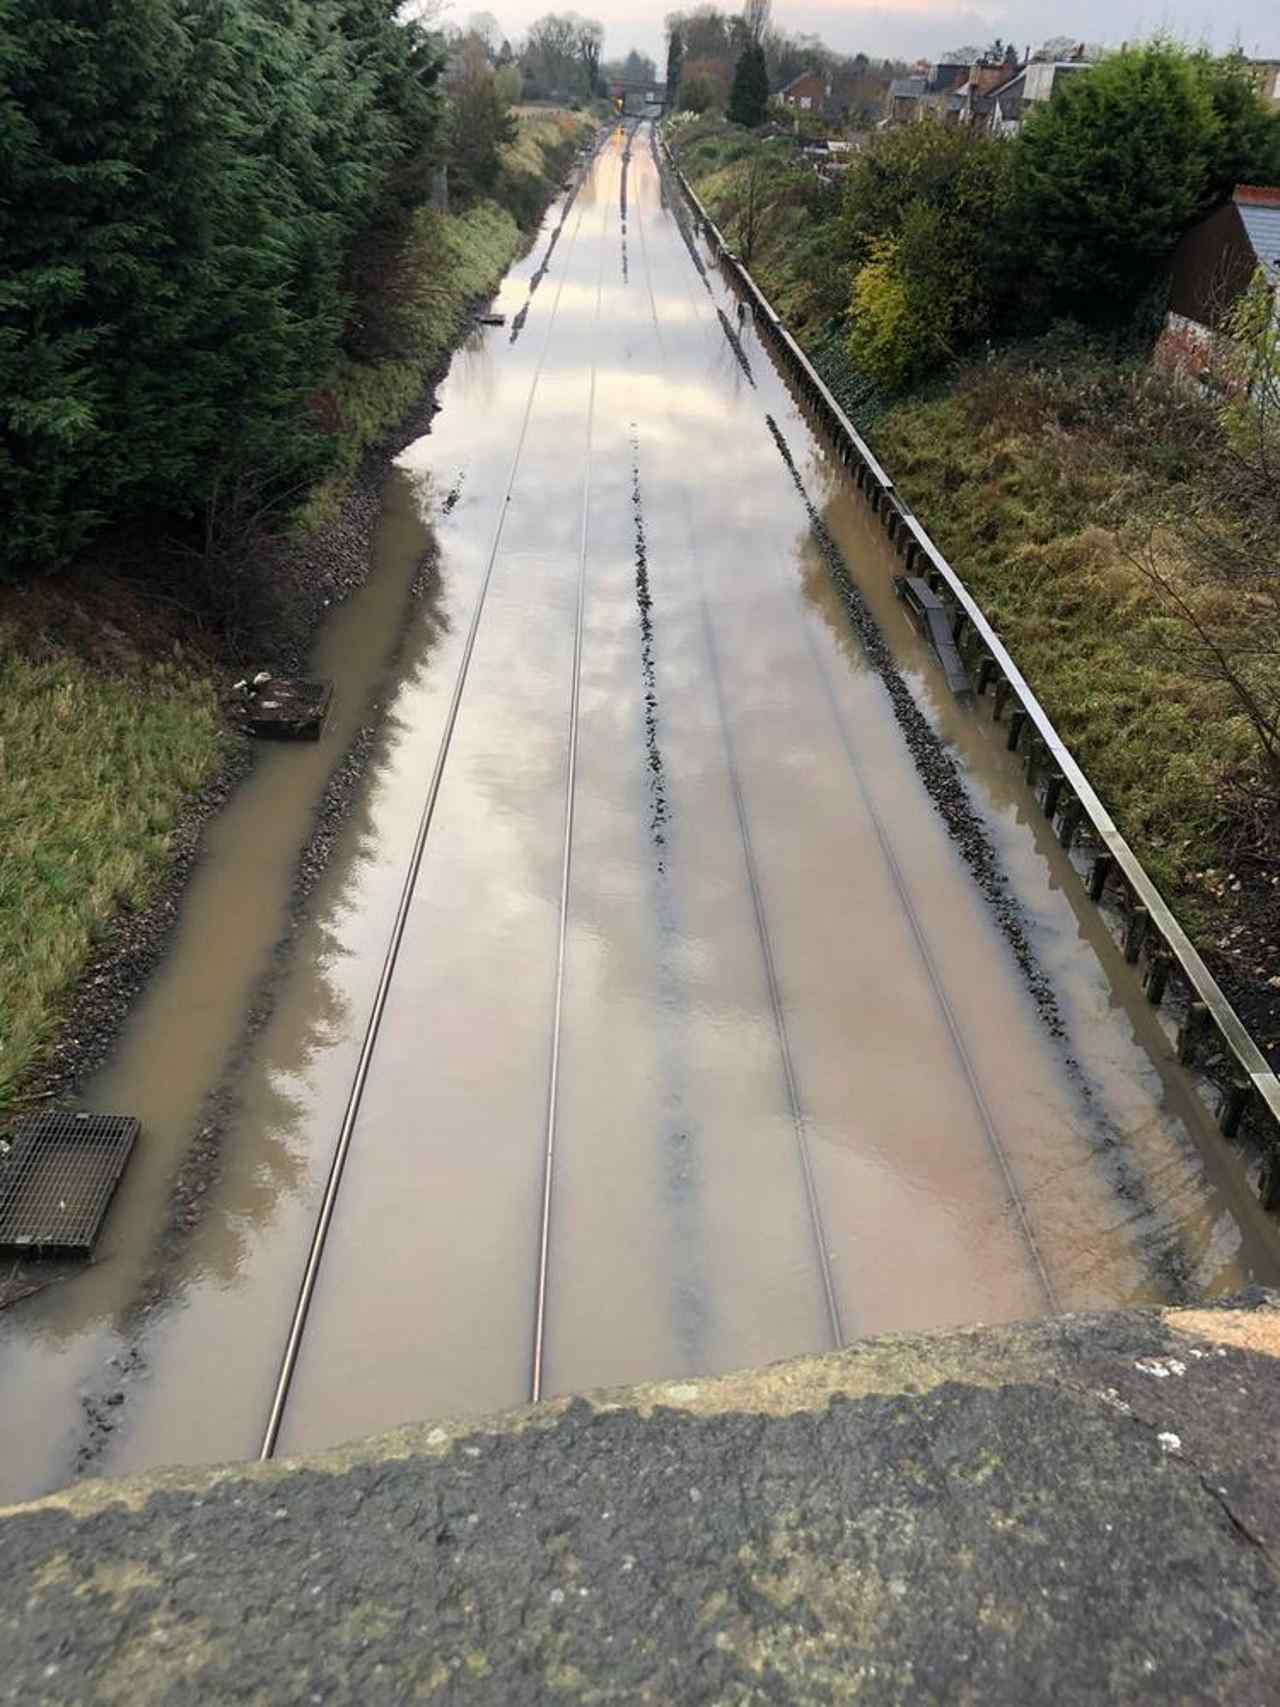 Train services resume between Long Eaton and Derby after flooding - RailAdvent - Railway News